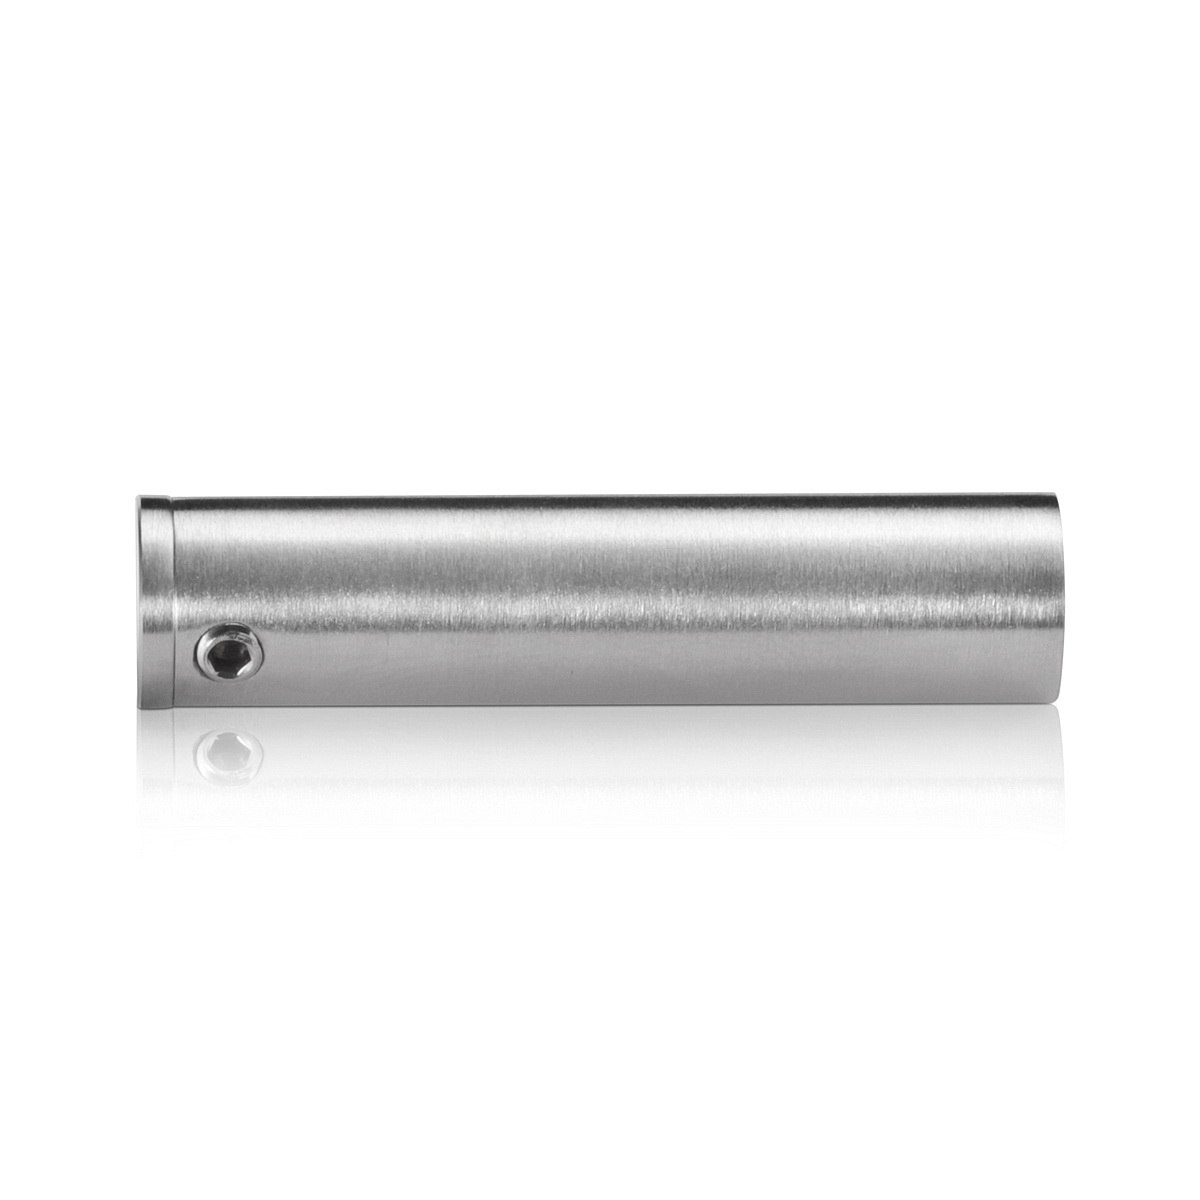 1/2'' Diameter x 2'' Barrel Length, Stainless Steel Glass Standoff Satin Brushed Finish  (Indoor or Outdoor Use)